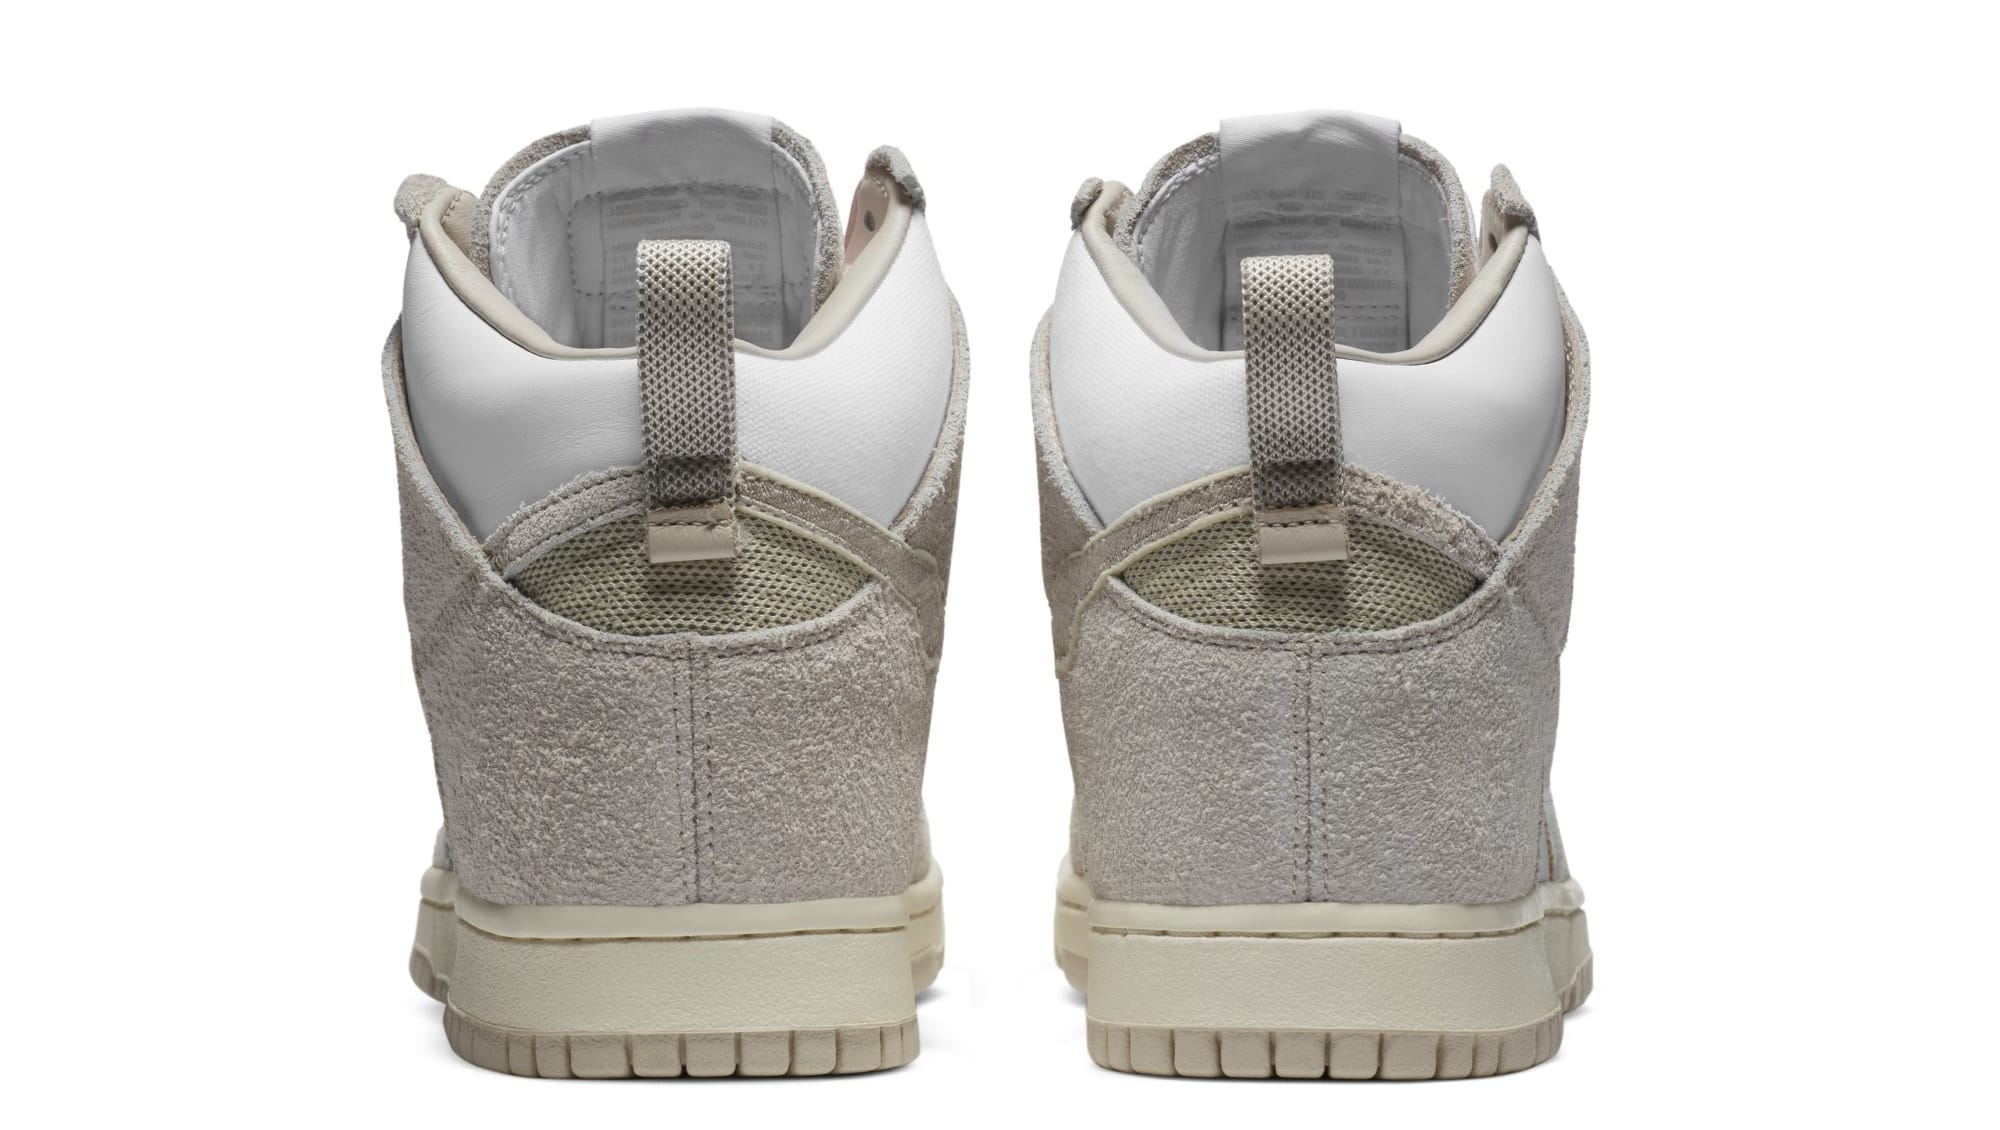 Notre x Nike Dunk High 'Light Orewood Brown/White' (Heel)